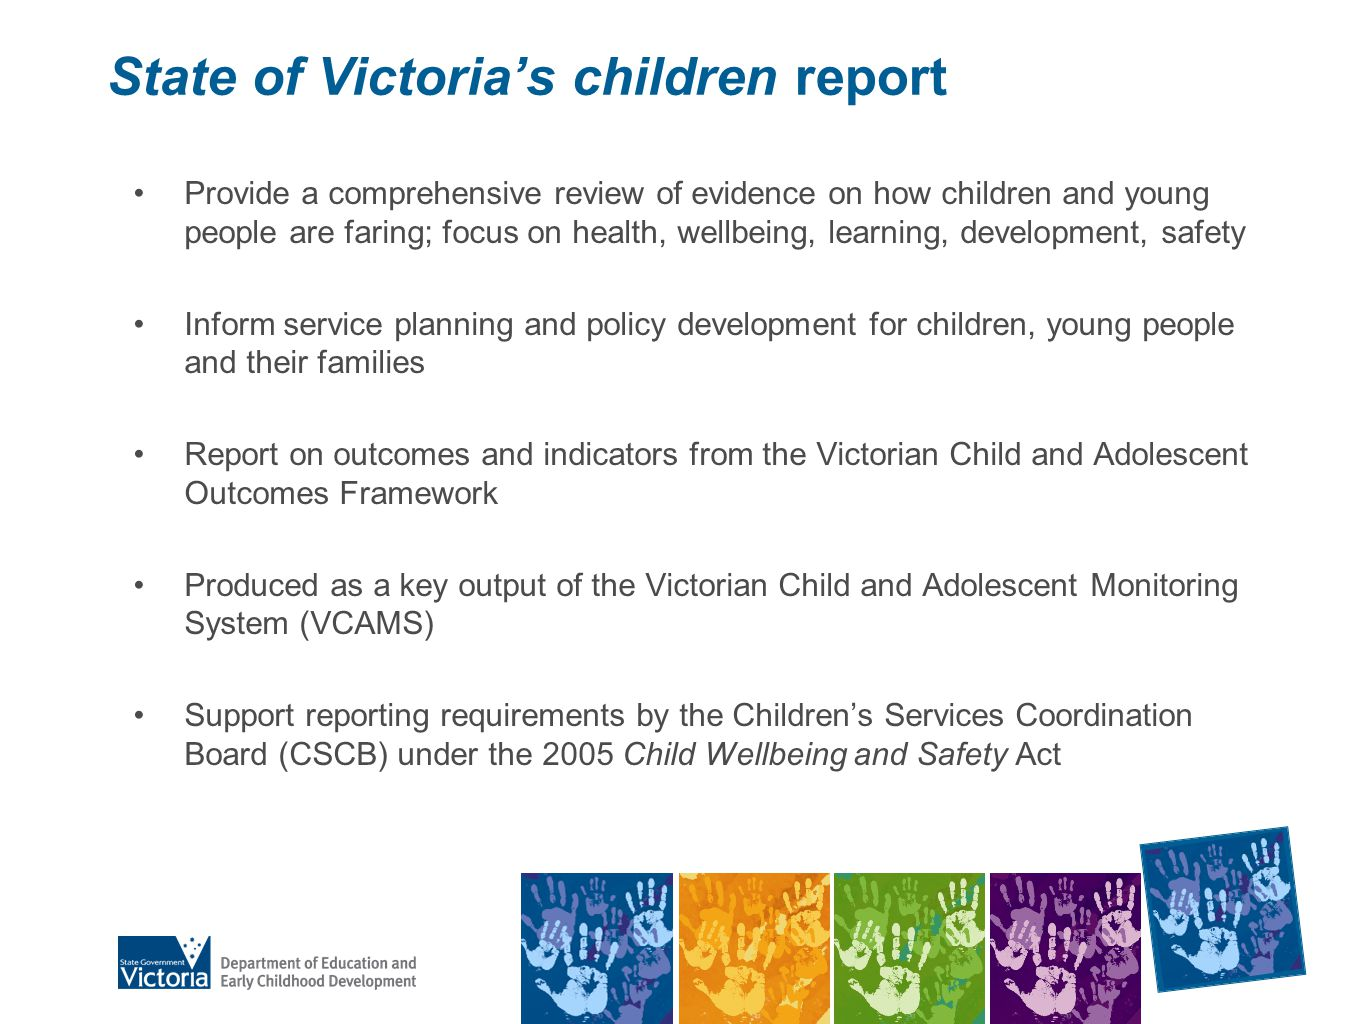 Statewide monitoring and reporting - State of Victoria's children http://www.education.vic.gov.au/about/directions/children/annualreports.htm